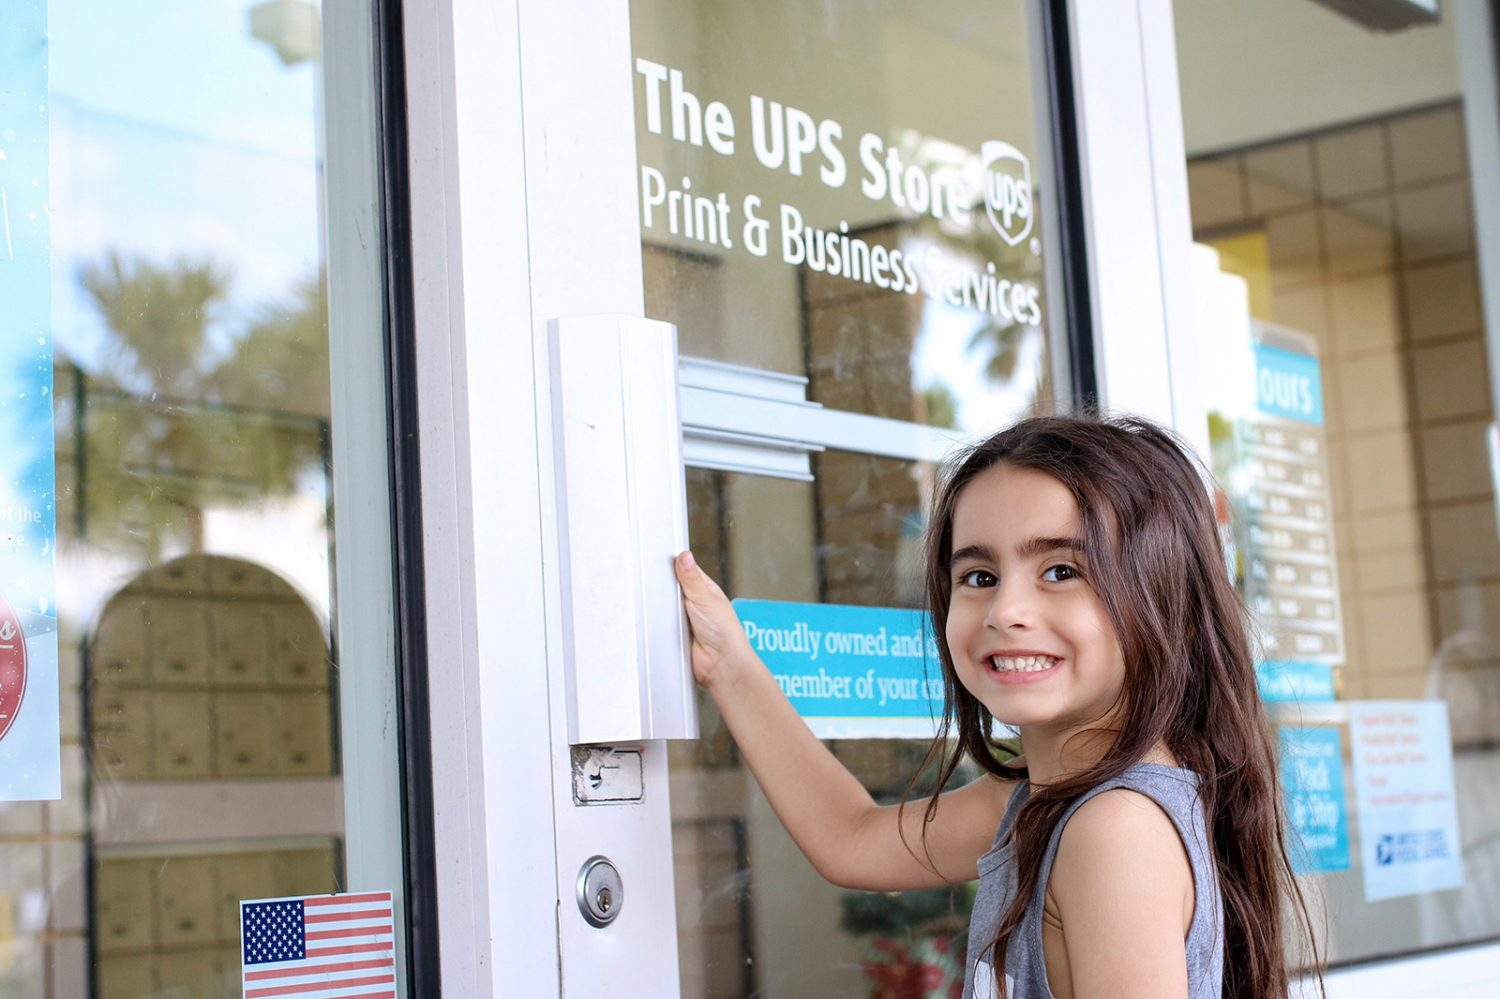 the ups store shipping holiday gifts ship christmas hanukkah christmas holidays mommy blog mom blogger family blog family influencer instagram mother father tween blog dad blog travel family blog United States family travel blogs 2017 website sites mom blog top best toddlers beach tips budget mommy blogger daddy blog tween blogger child brand influencer the super mom life dad blog dad blogger christmas presents ups